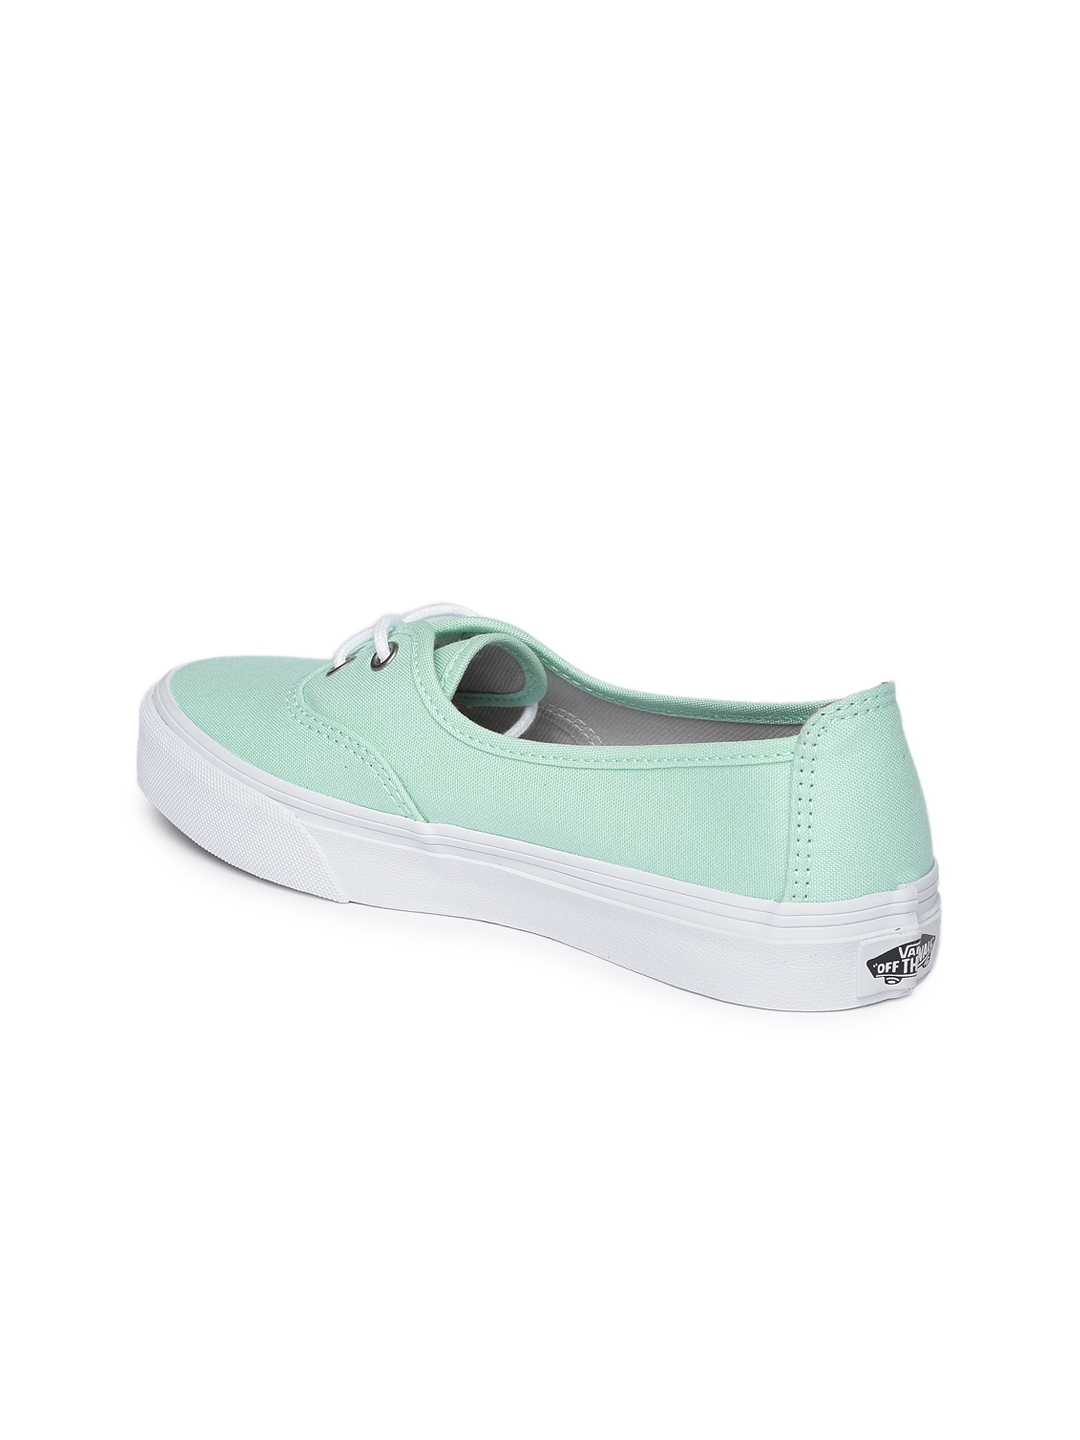 9f8213be06d166 Buy Vans Women Mint Green Solana Sneakers - Casual Shoes for Women ...